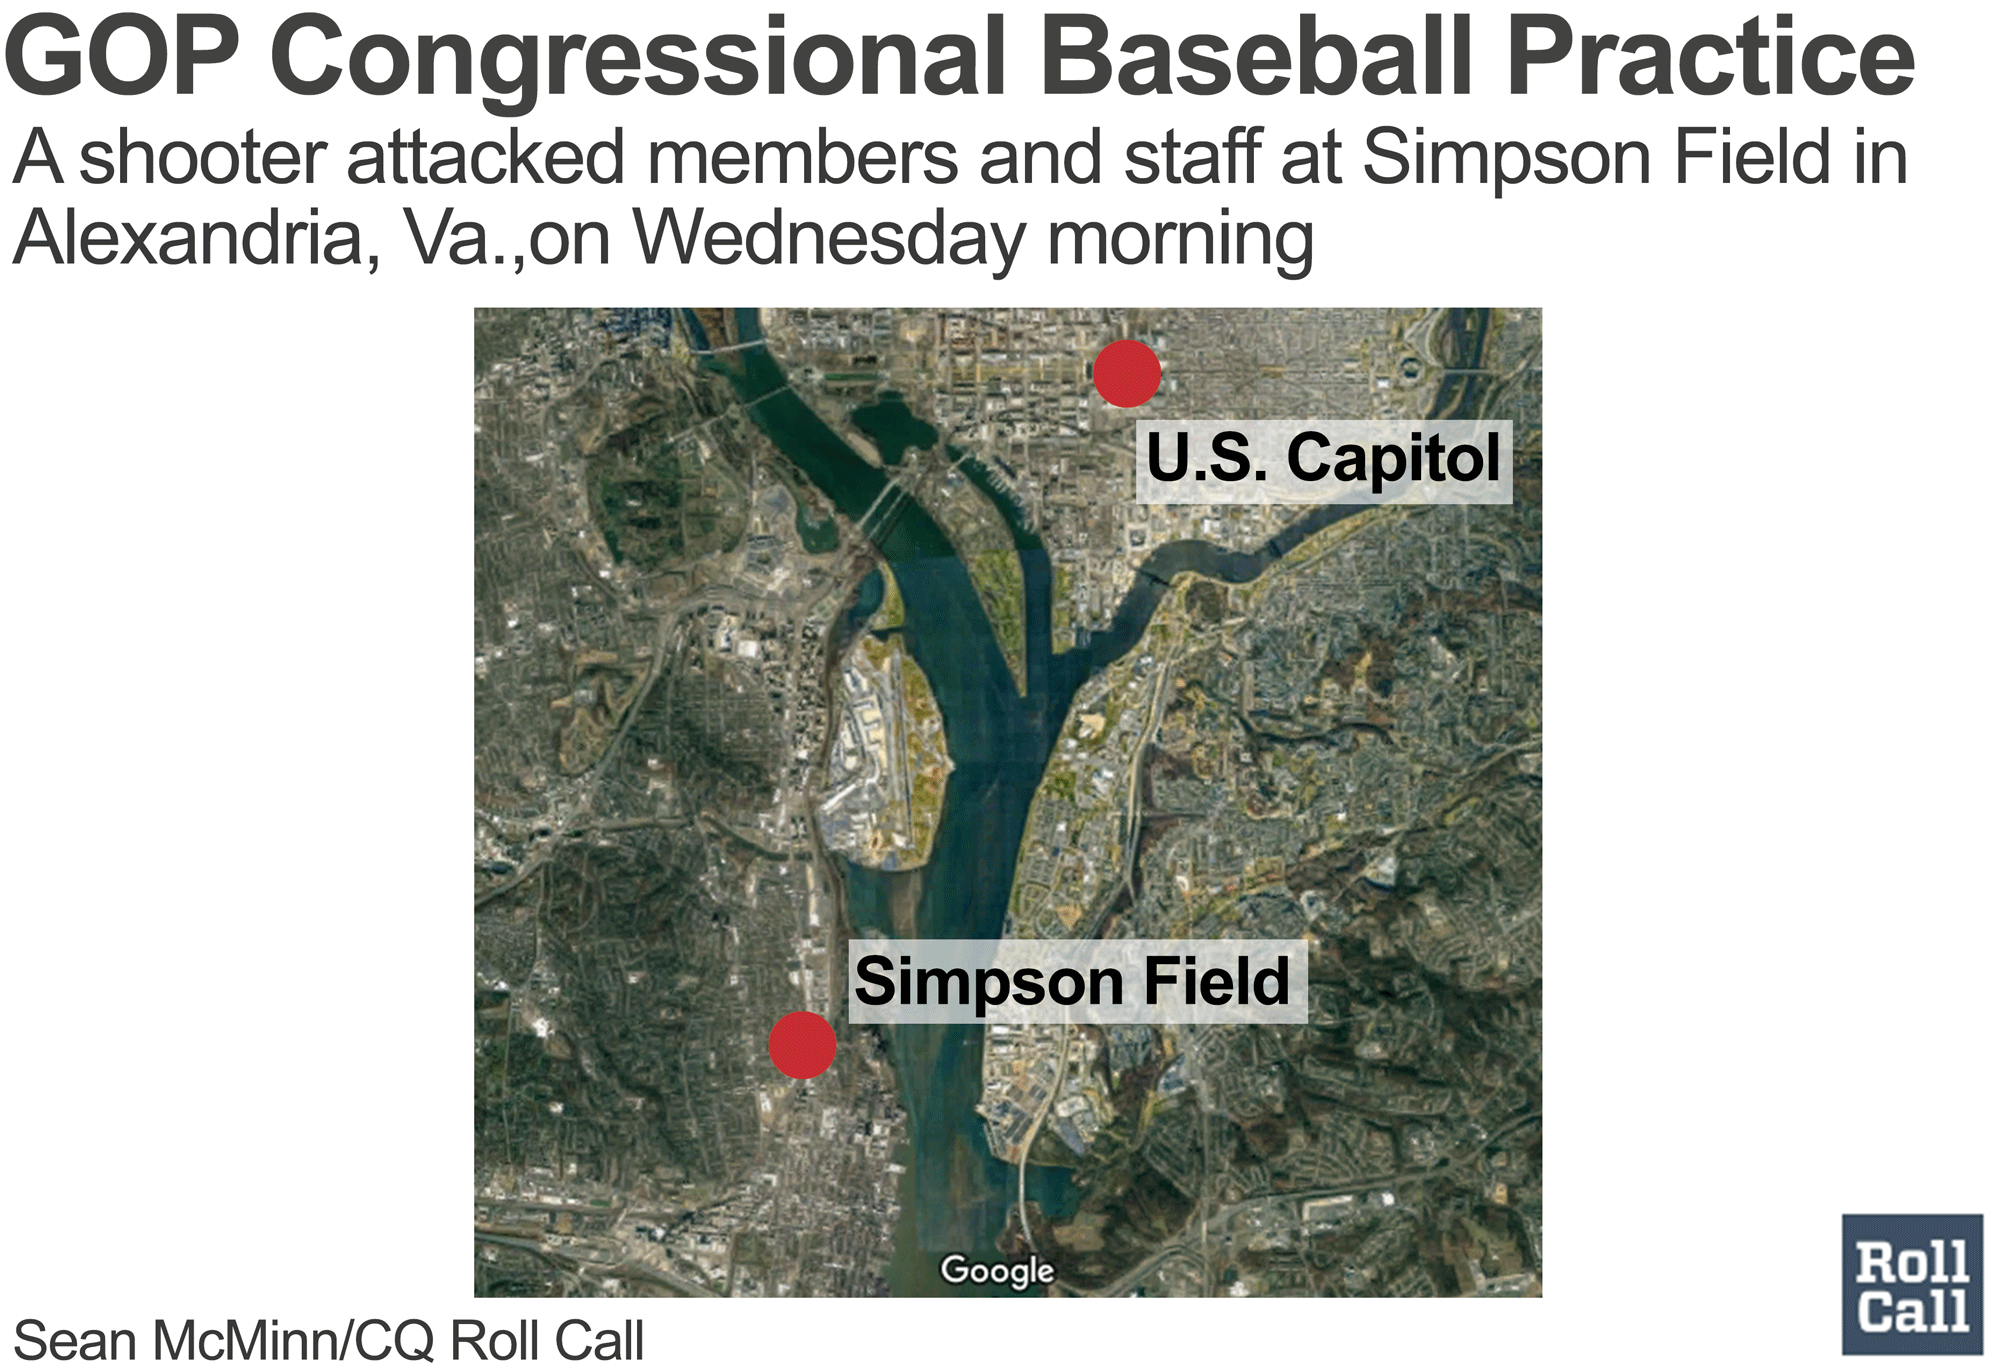 Play Ball! Congressional Baseball Game Goes On in Defiance of Shooting